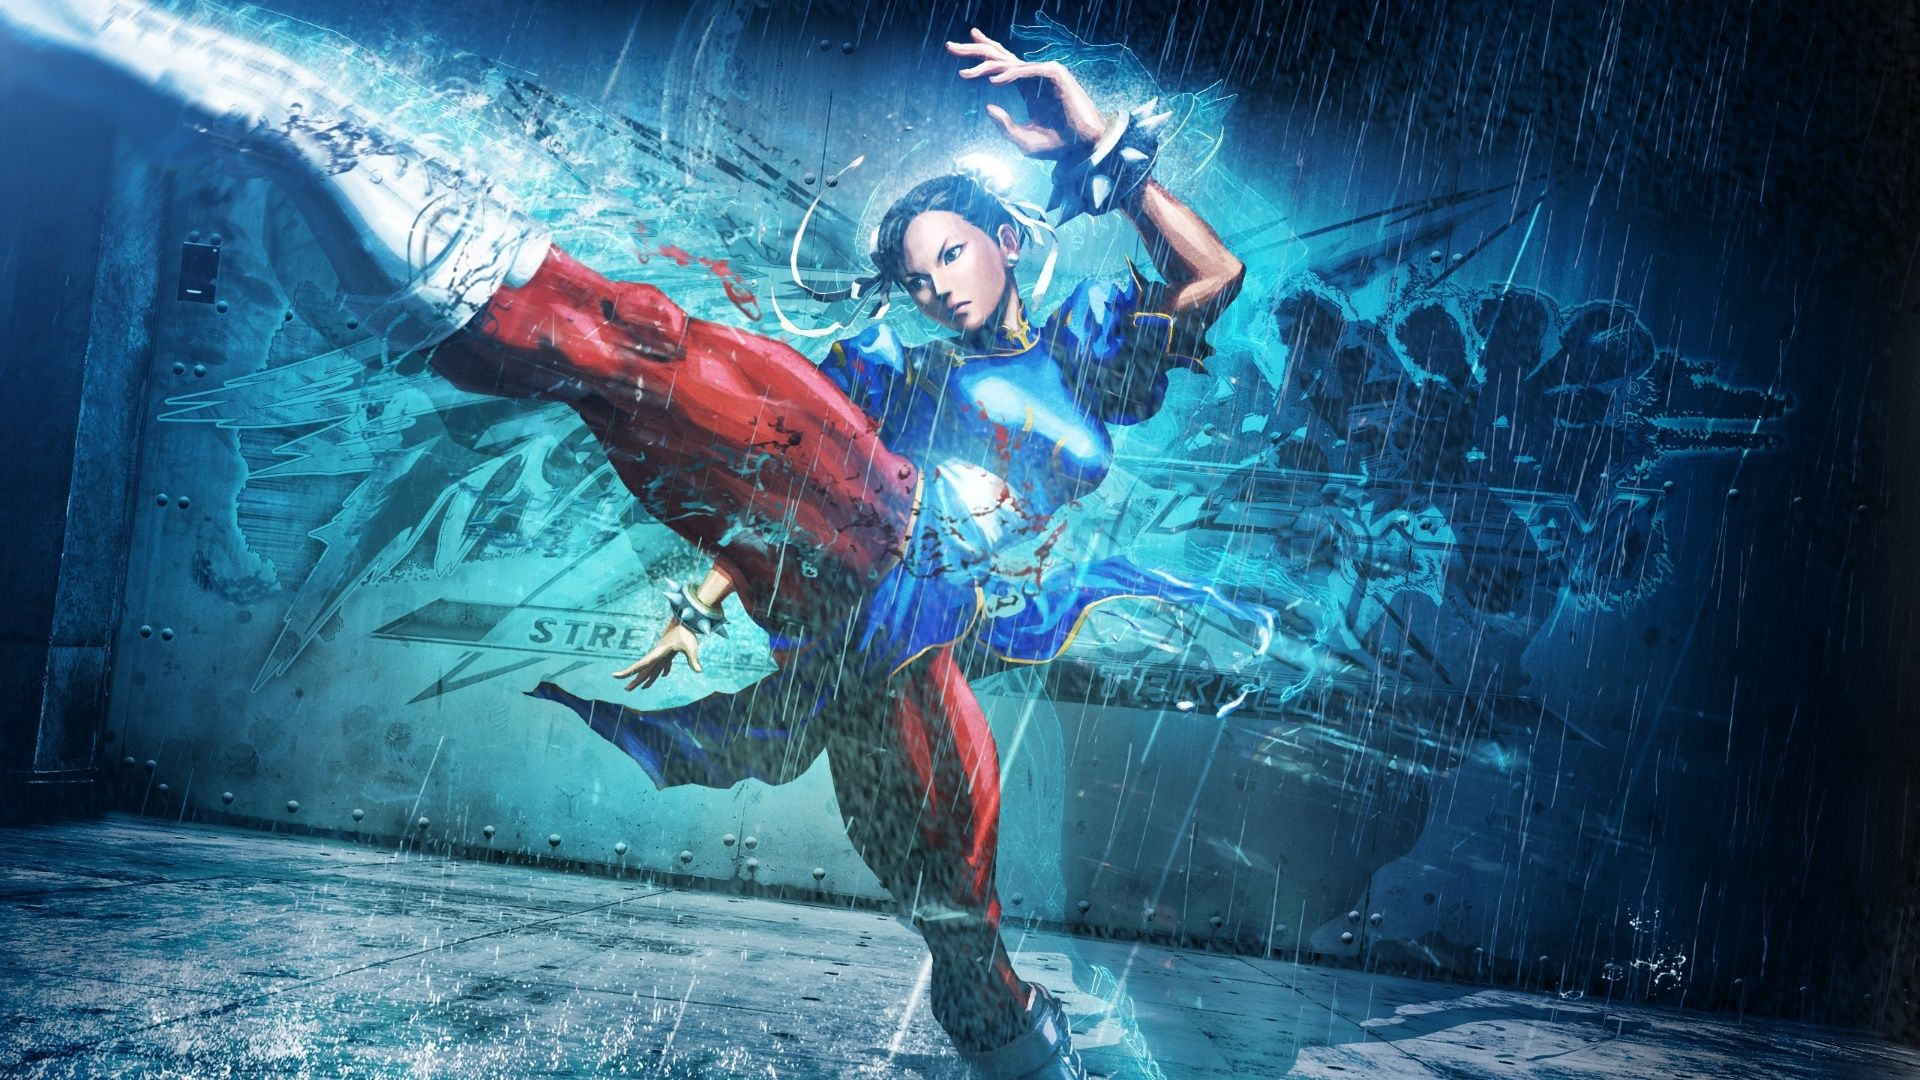 Pc Street Fighter X Tekken Wallpapers Jonny Marriner